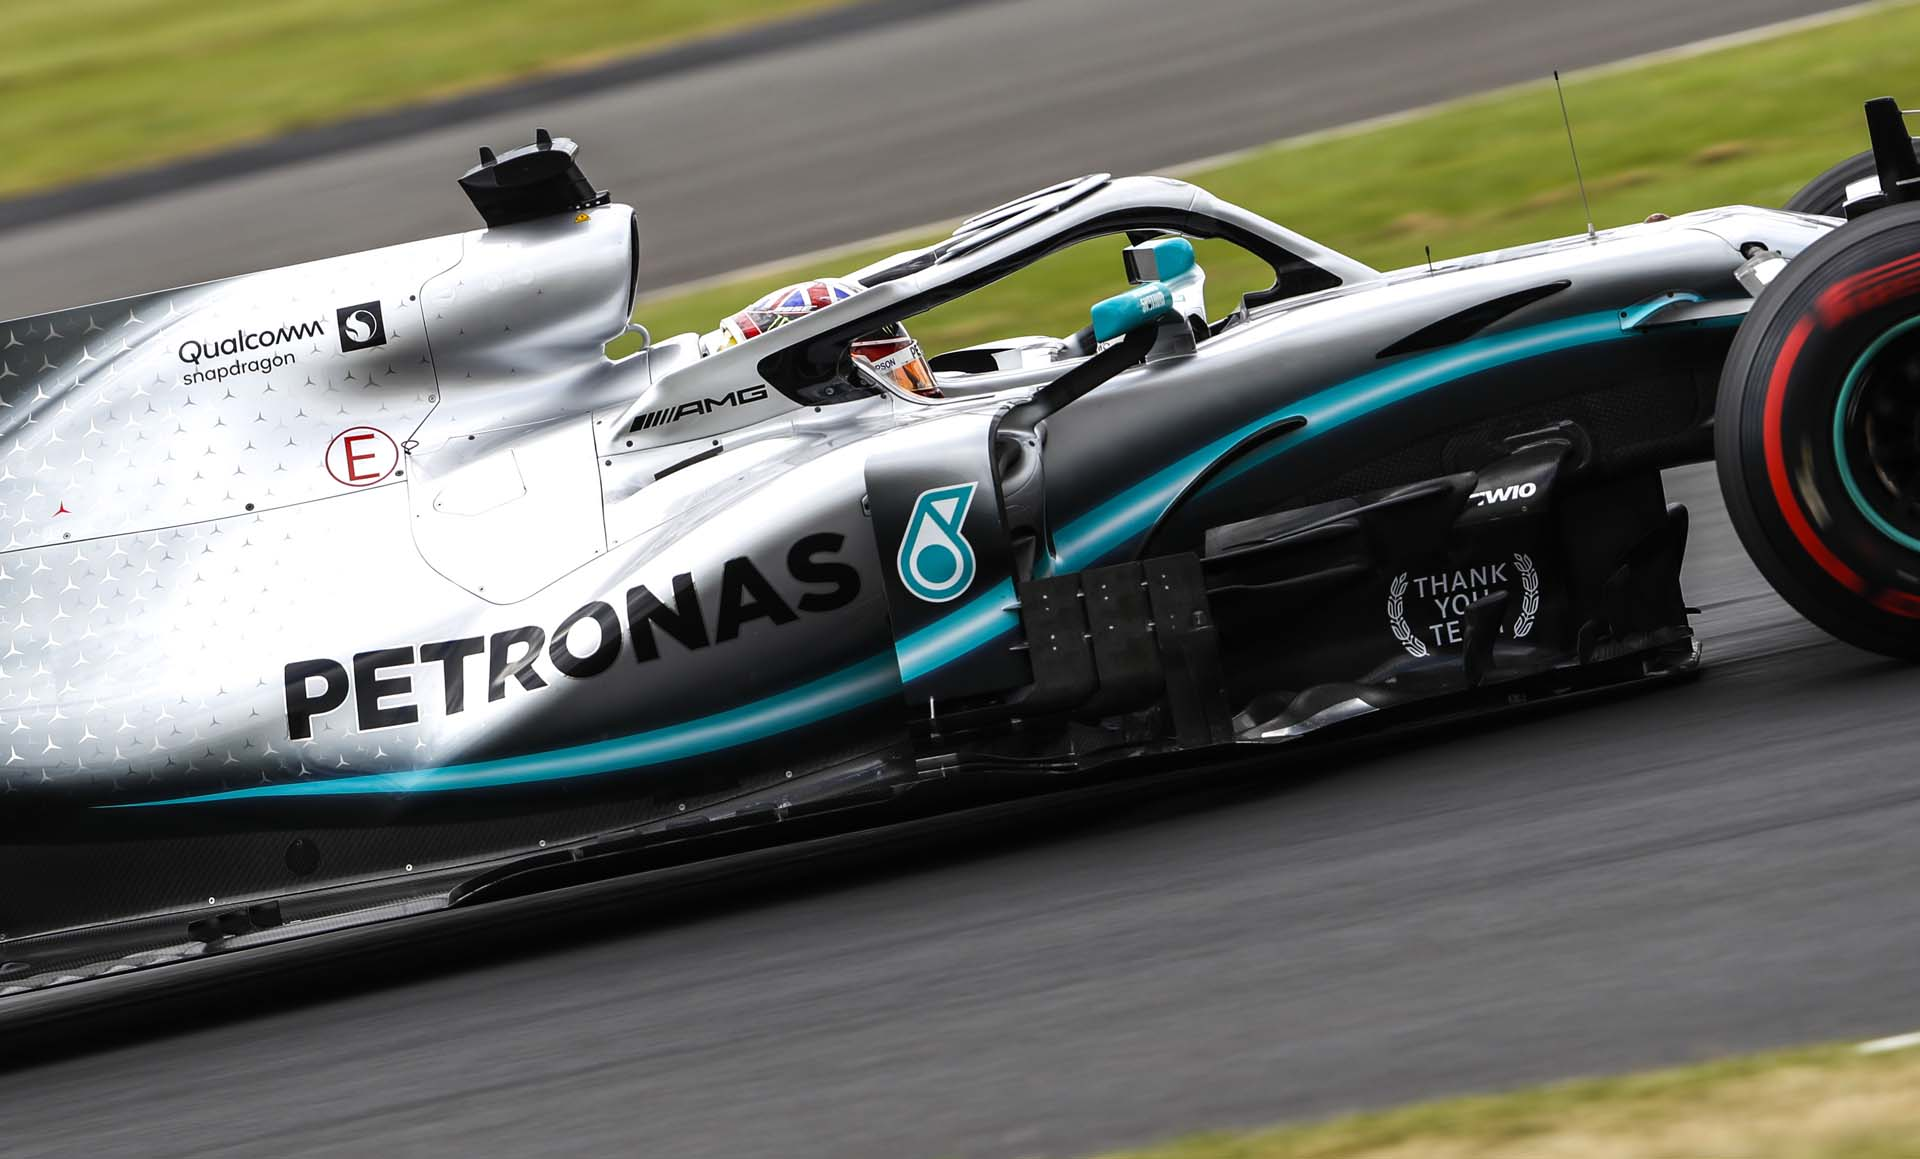 2019 British Grand Prix, Saturday - Wolfgang Wilhelm Lewis Hamilton Mercedes